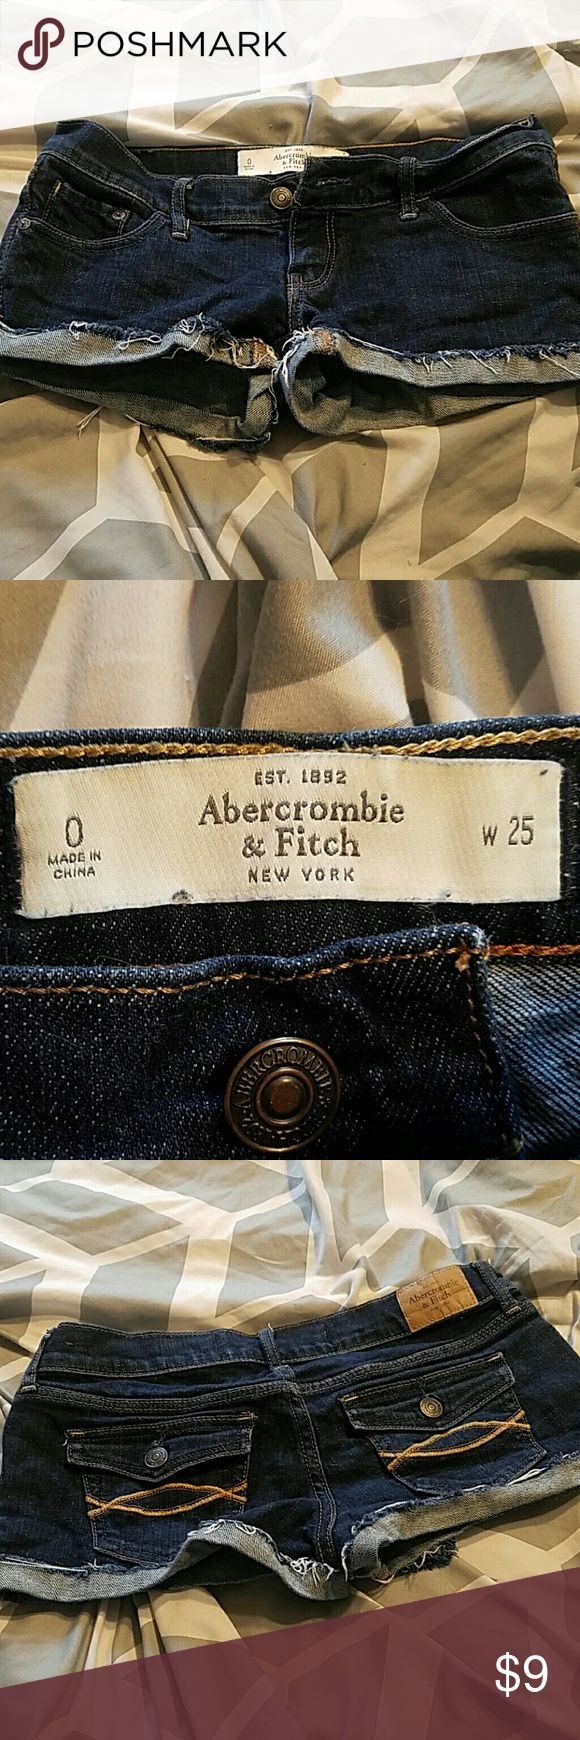 Abercrombie and fitch shorts Abercrombie and fitch shorts size 0 Abercrombie & Fitch Shorts Jean Shorts